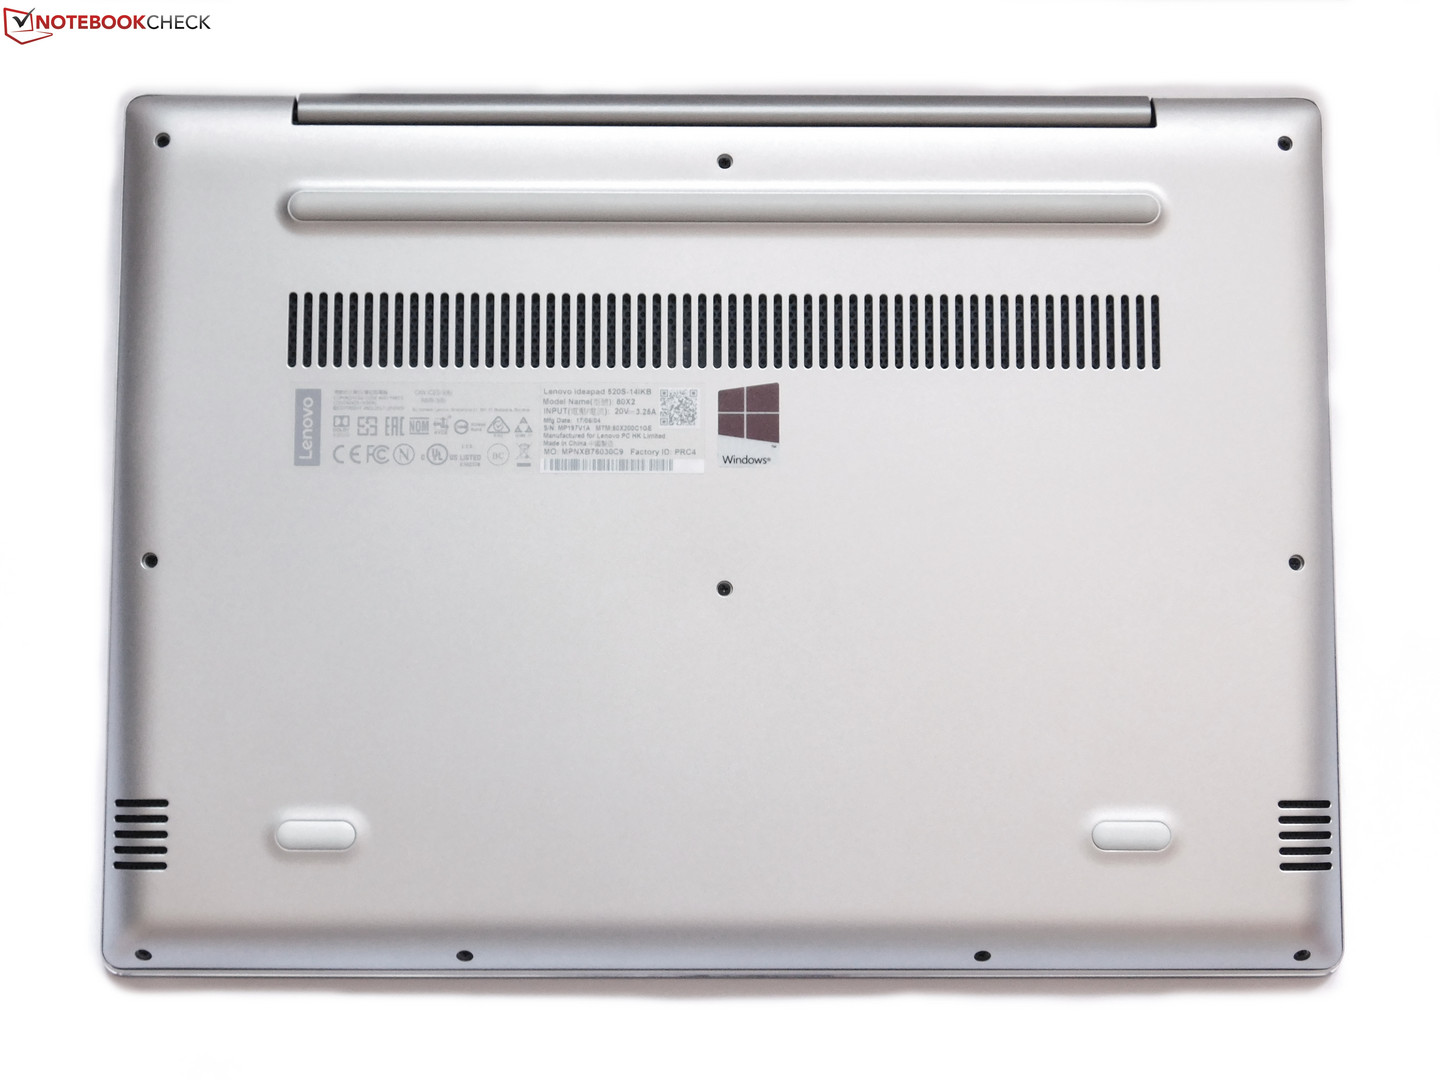 Lenovo Ideapad 520s 14ikb Core I5 7200u 940mx Laptop Review Power Supply Wiring Diagram Moreover Toshiba Schematic Full Resolution